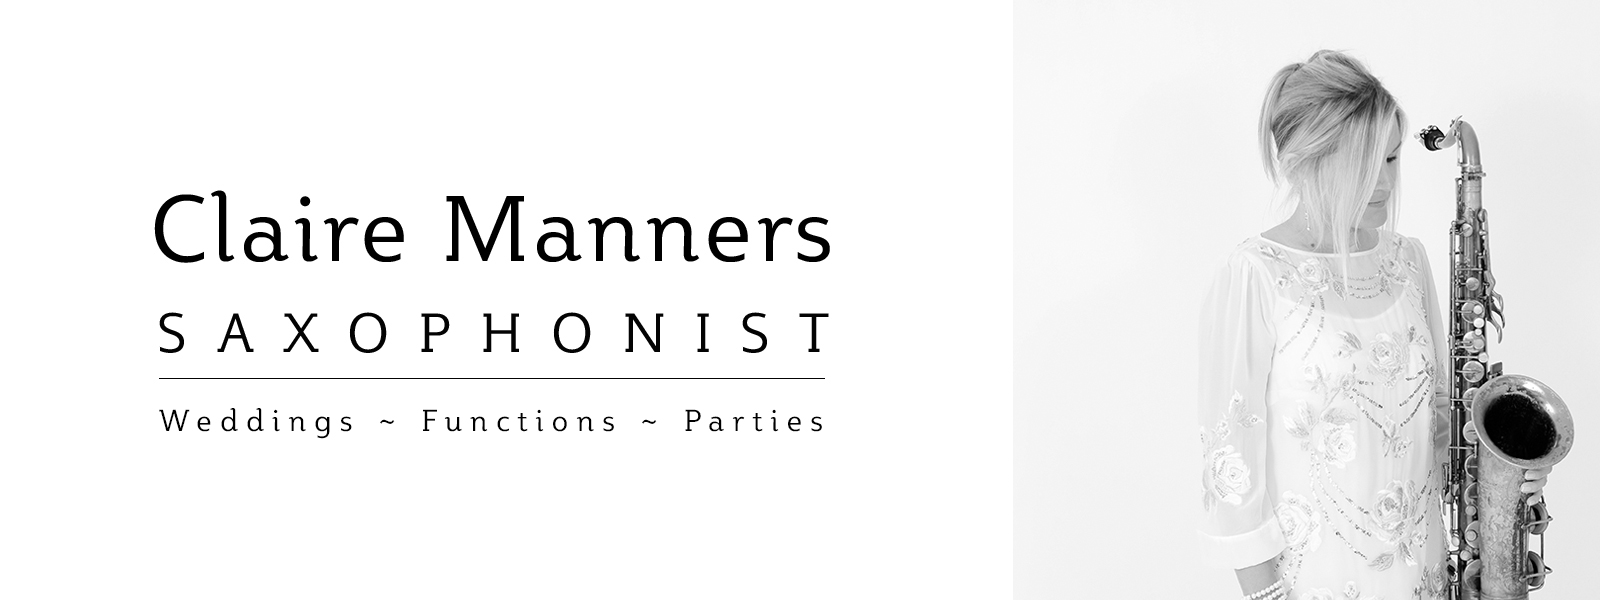 Manners-homepage-pic-white-amend